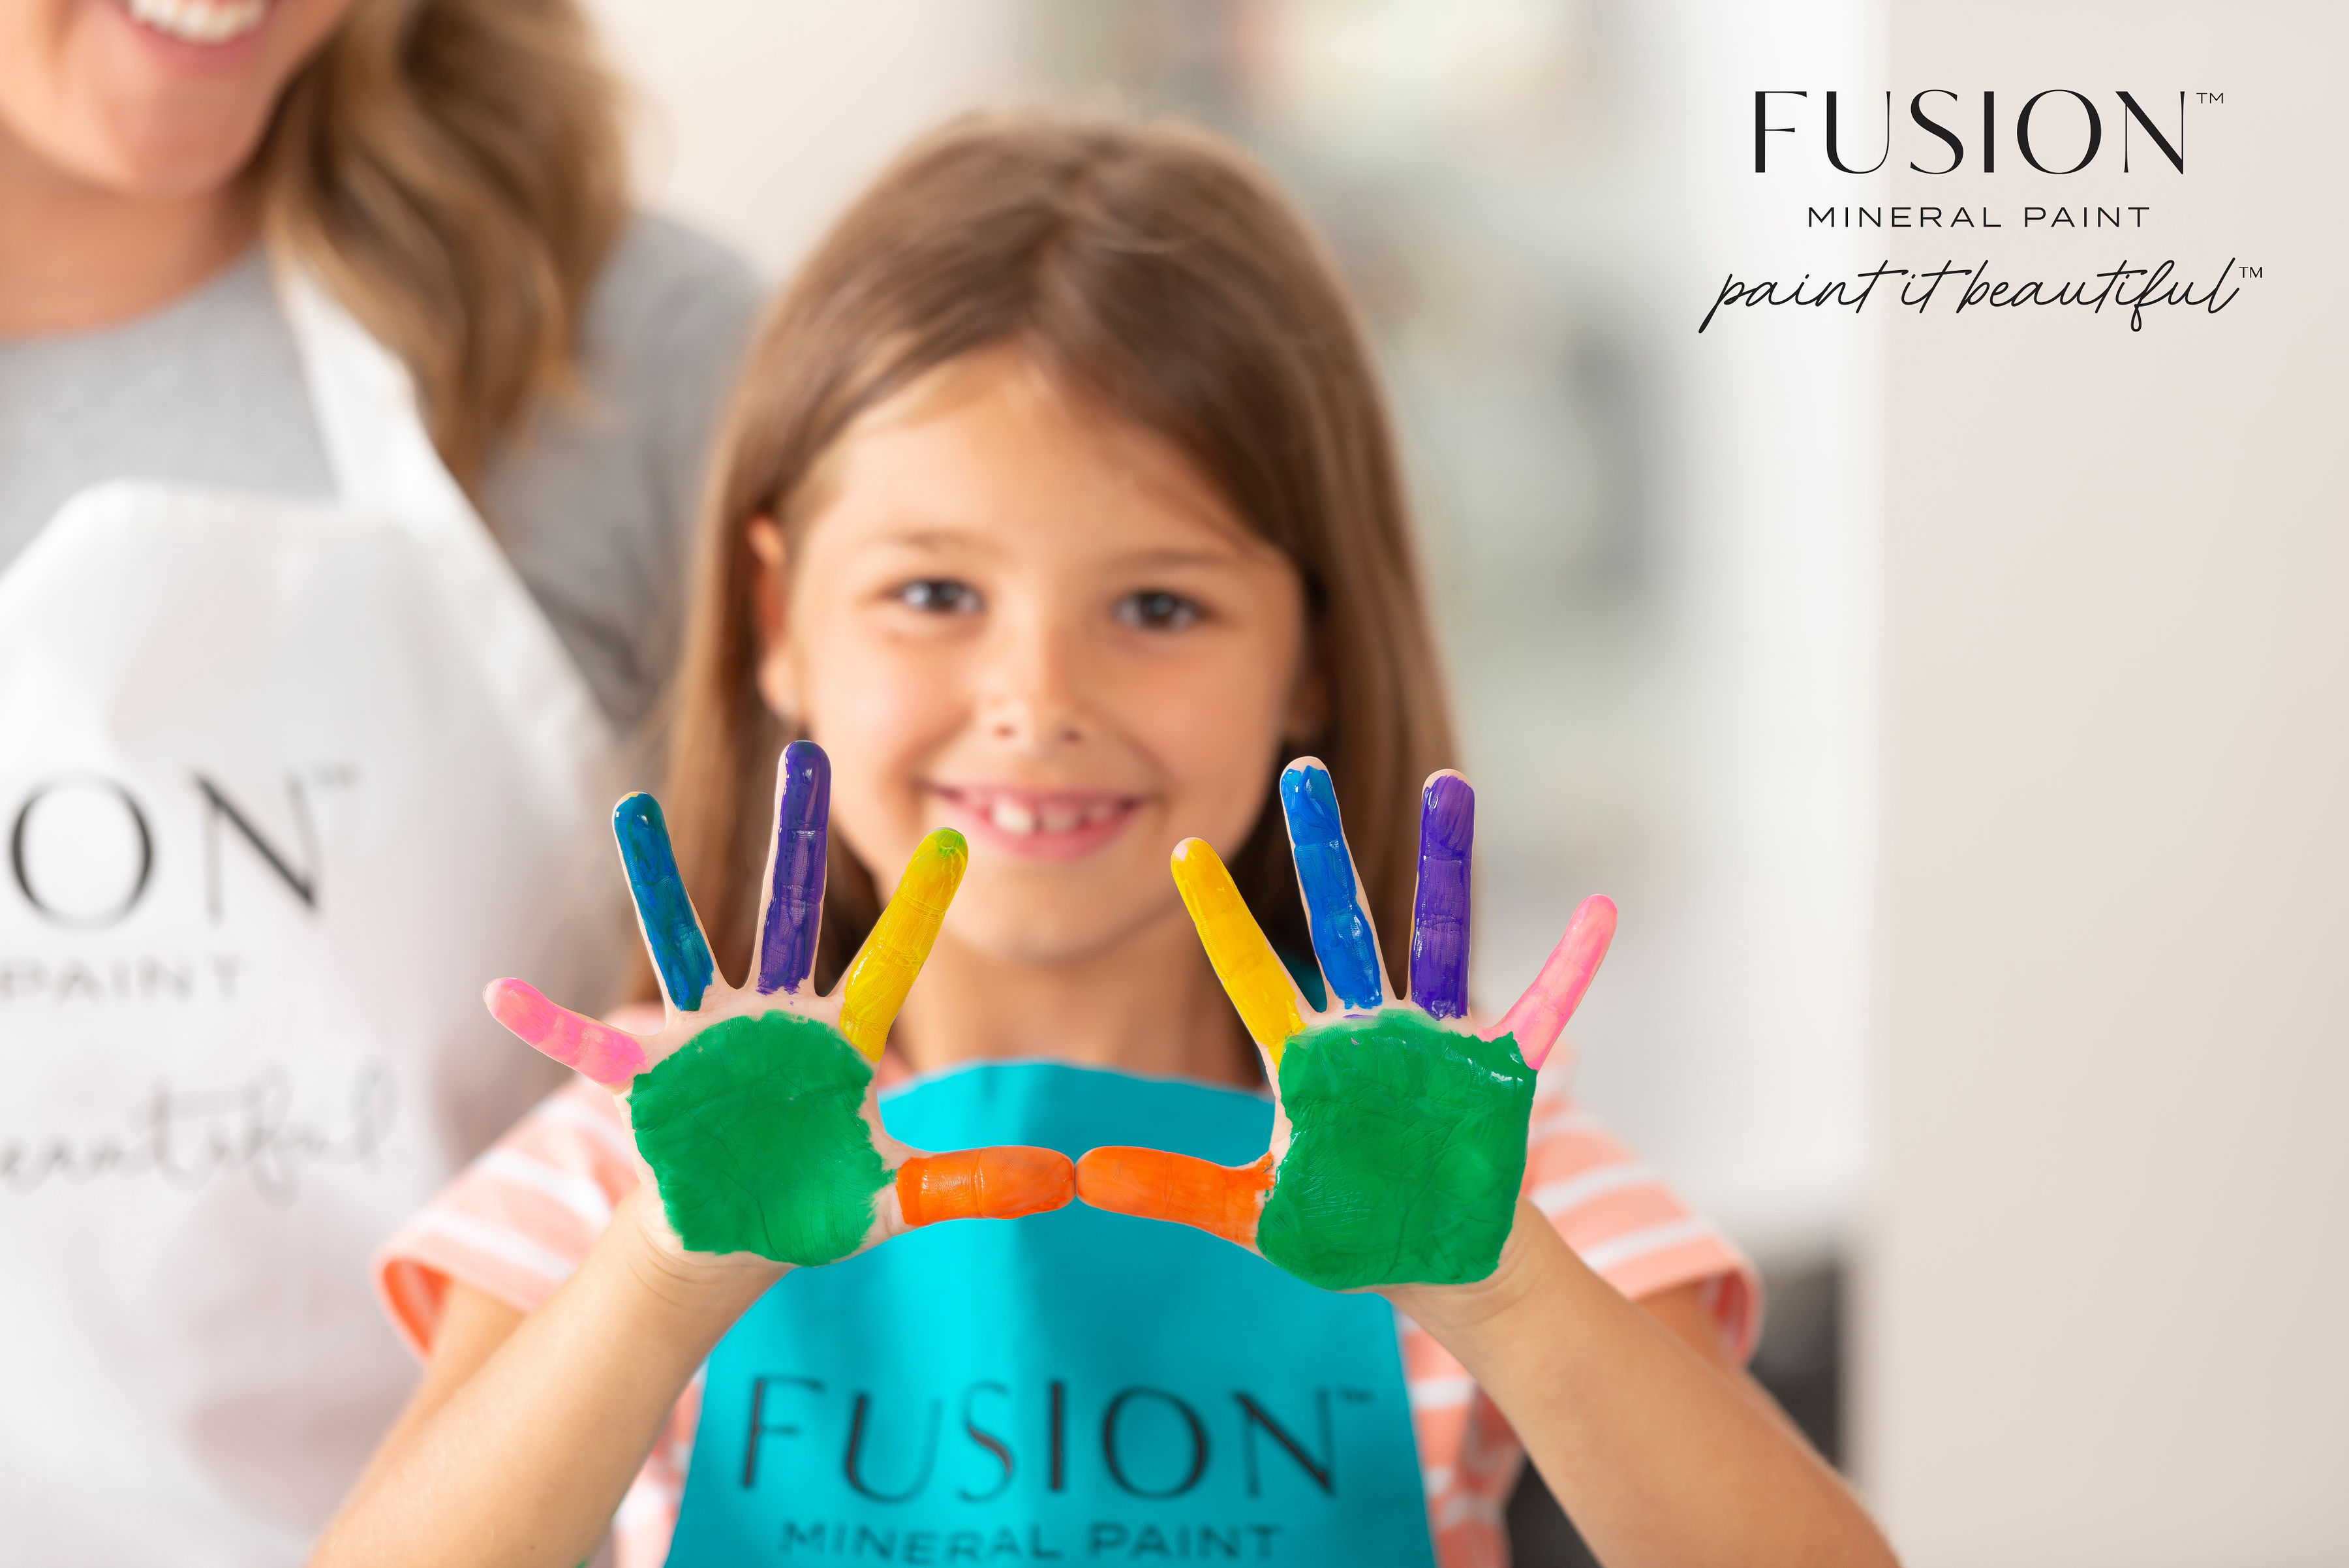 fusionforkids1